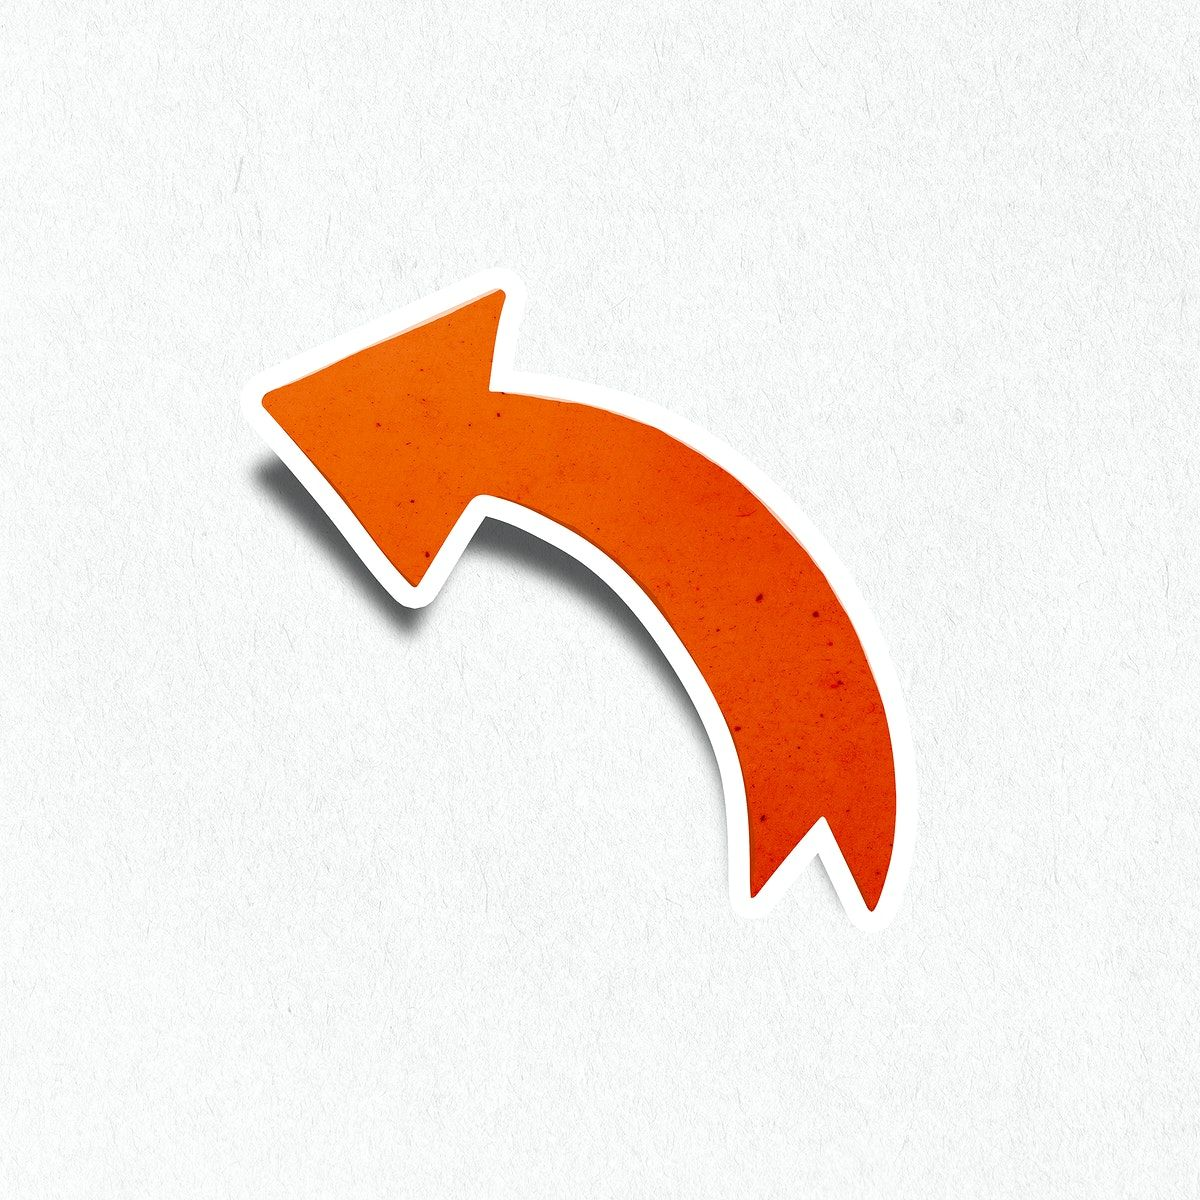 Fire Orange Turn Left Arrow Sticker With White Border Icon Free Image By Rawpixel Com Wan Free Illustrations Left Arrow Illustration